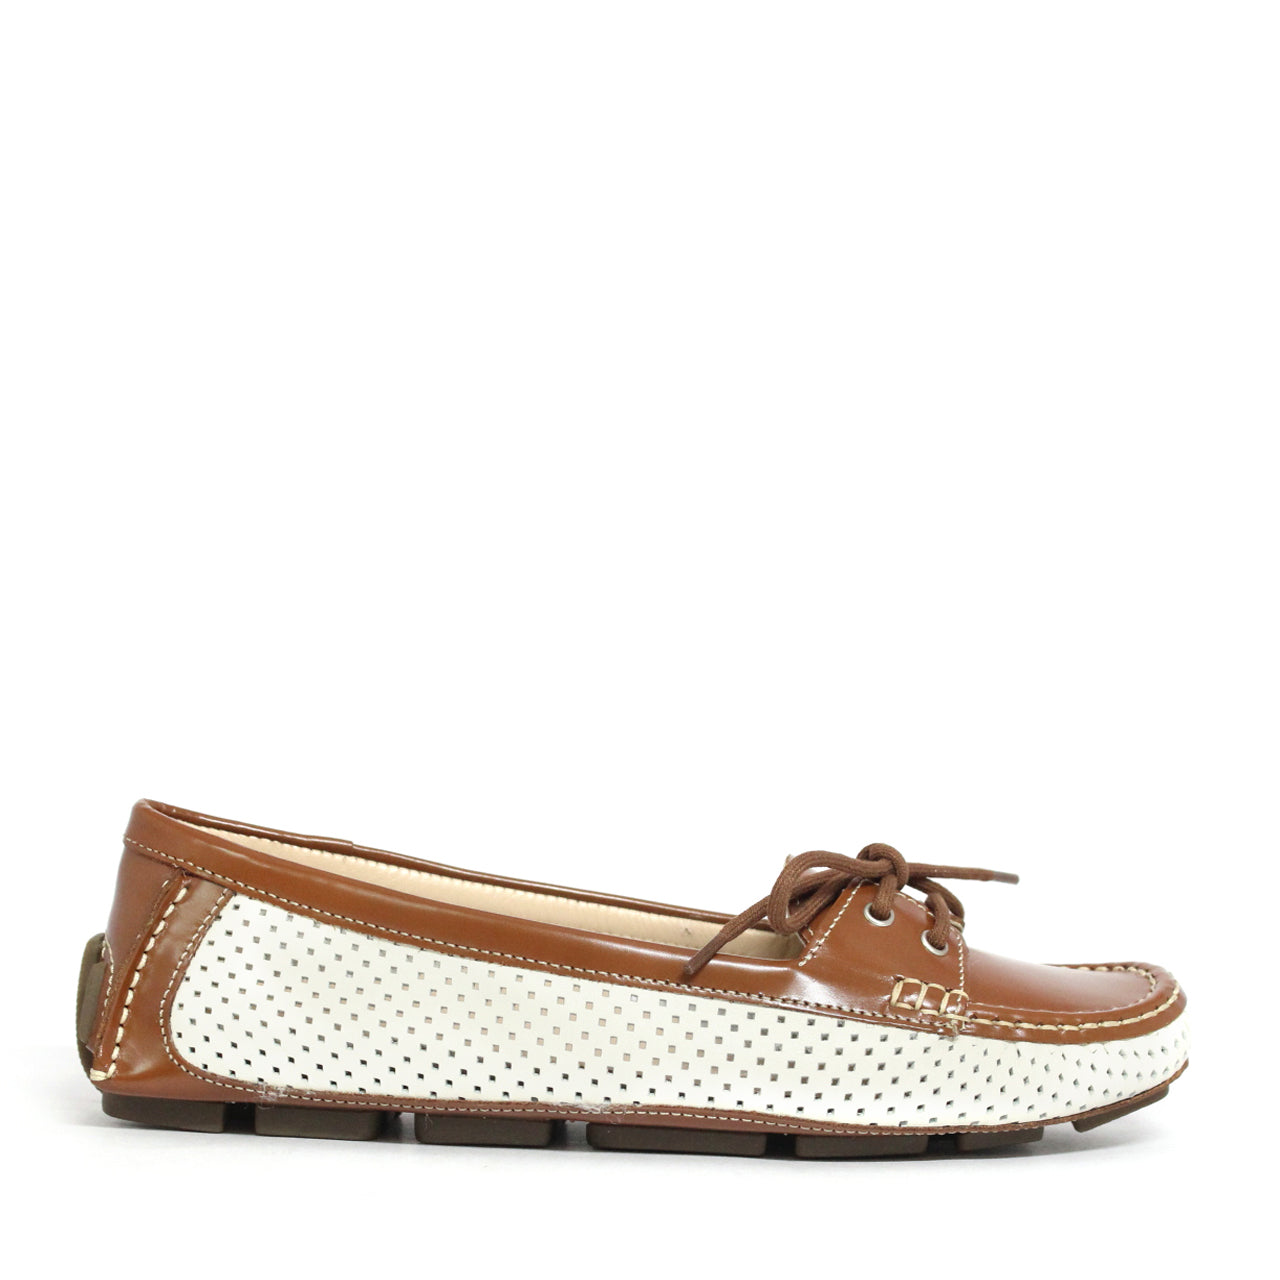 Bally Odrette Women's Driver Moccasin Shoes